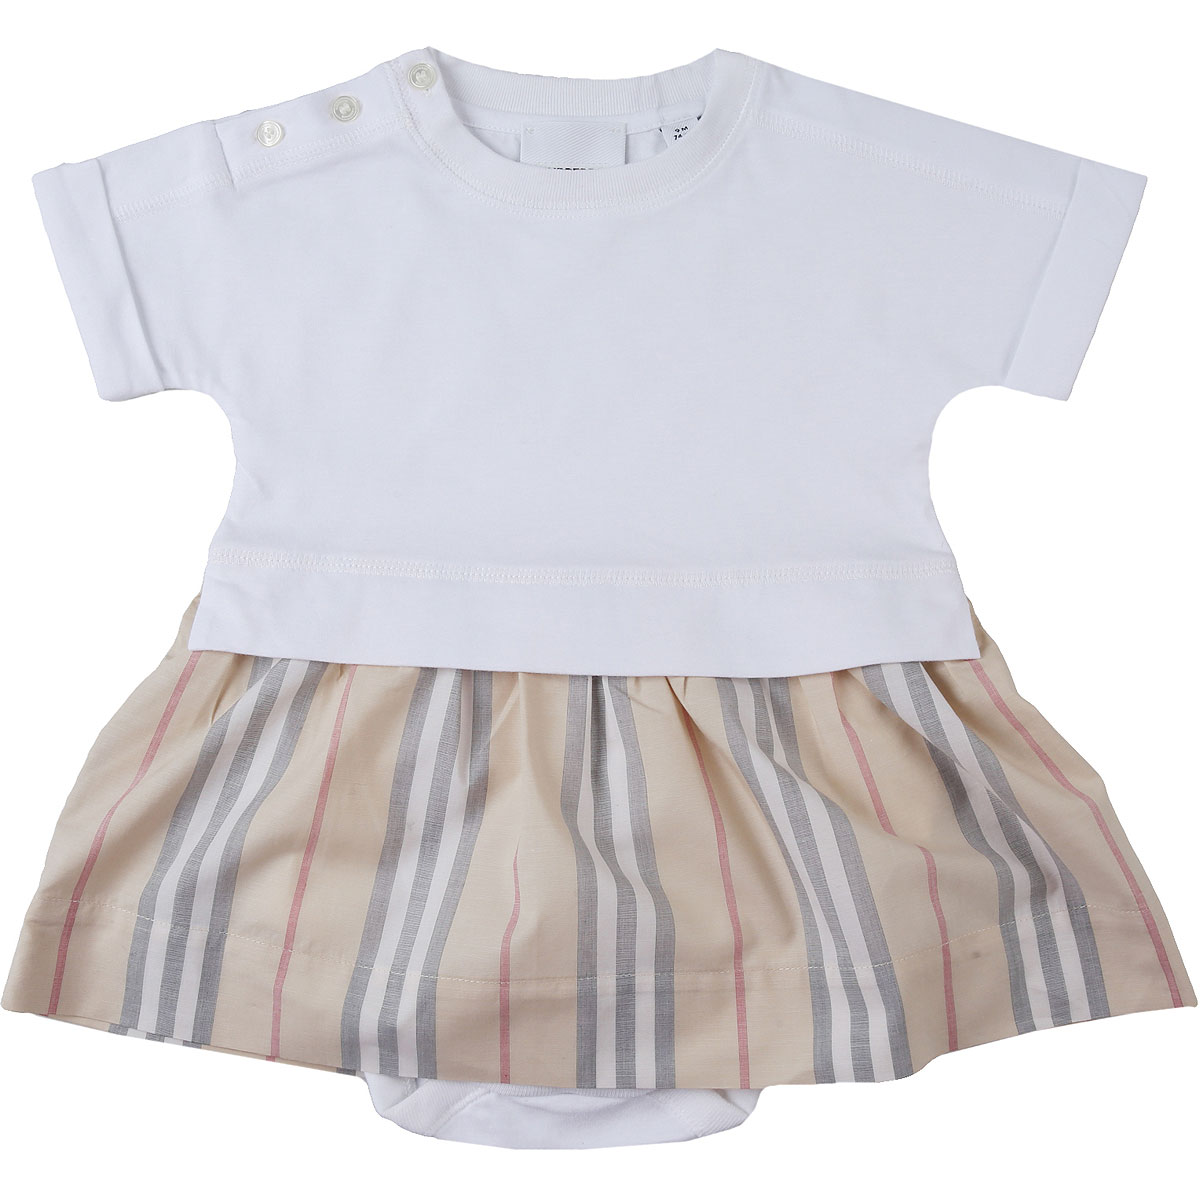 Burberry Baby Bodysuits & Onesies for Girls On Sale, White, Cotton, 2019, 18M 6M